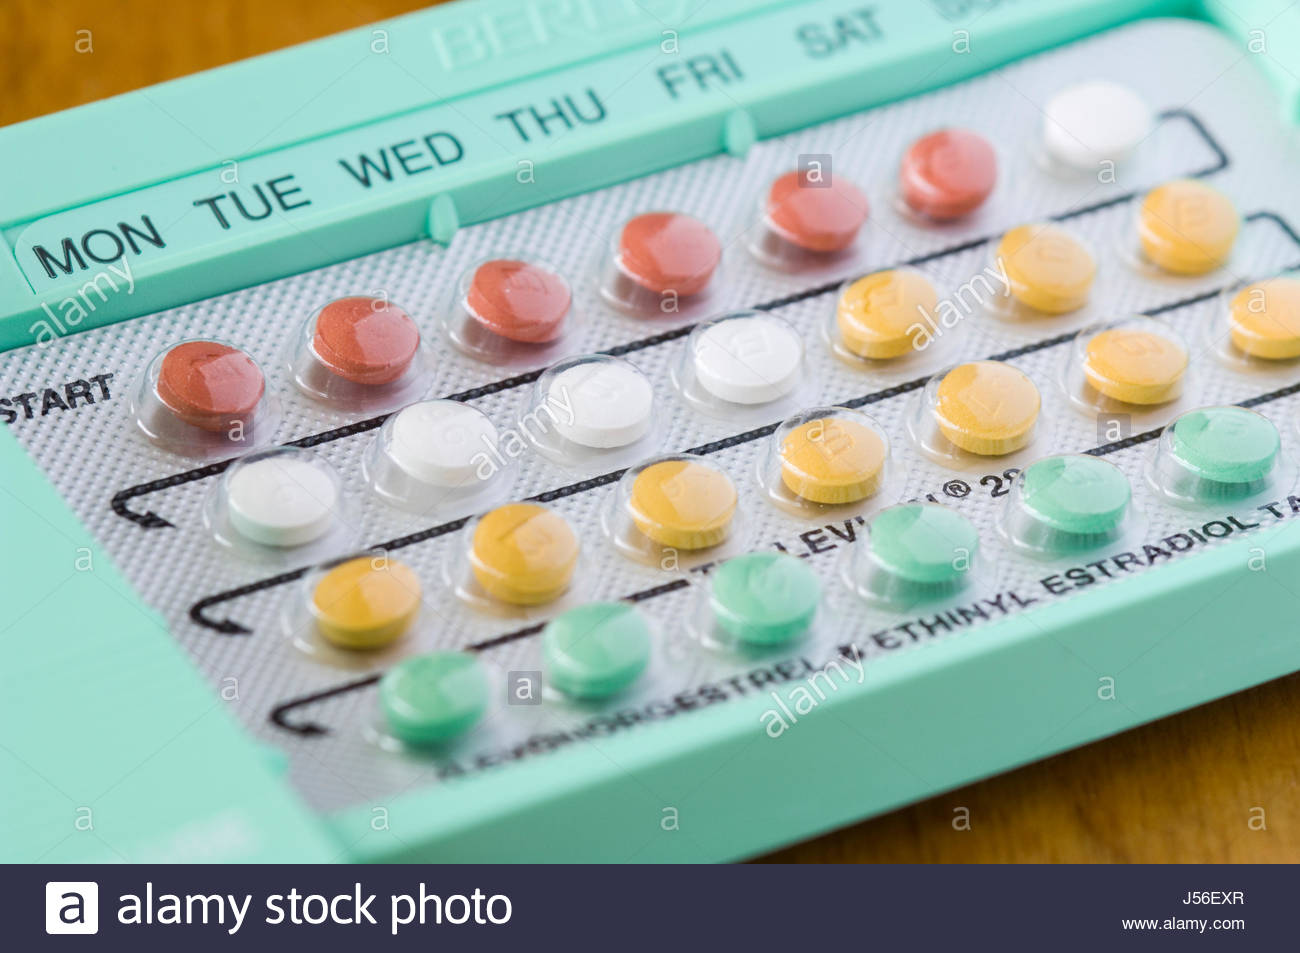 Birth control pills in a blister pack. - Stock Image